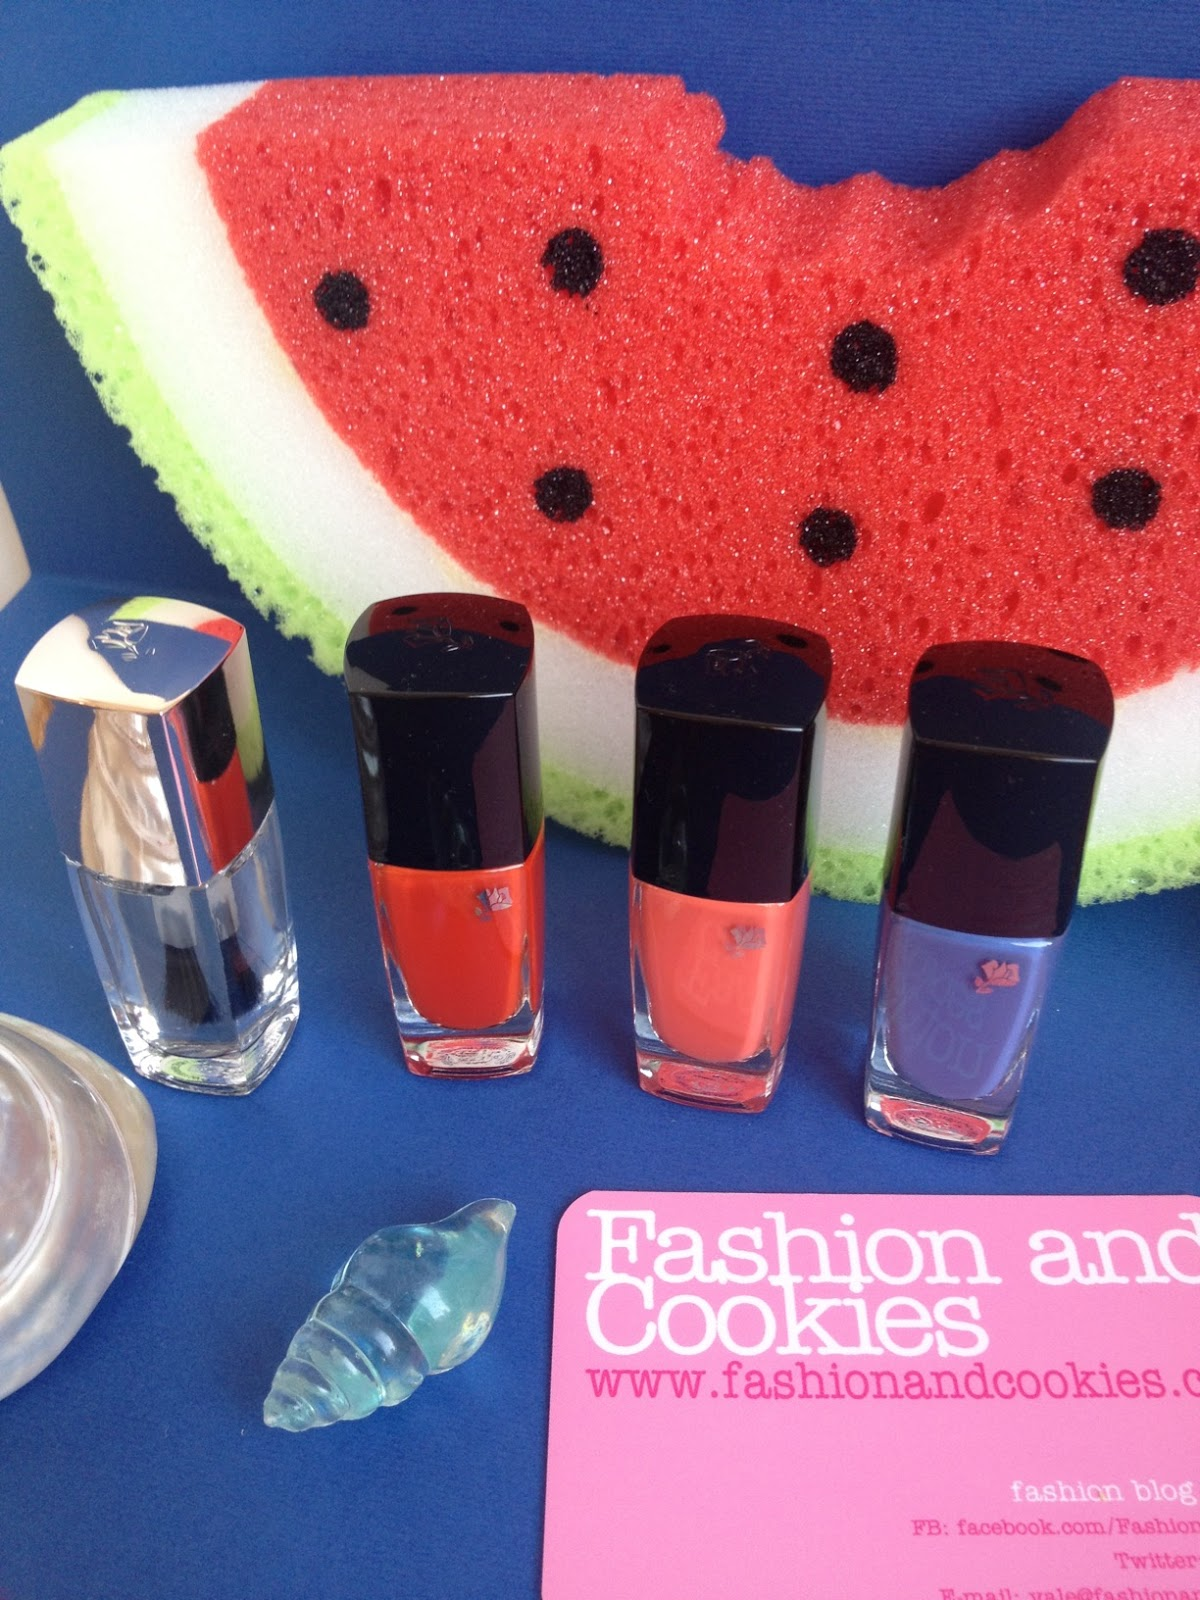 Lancome French Paradise nail polish on Fashion and Cookies fashion blog